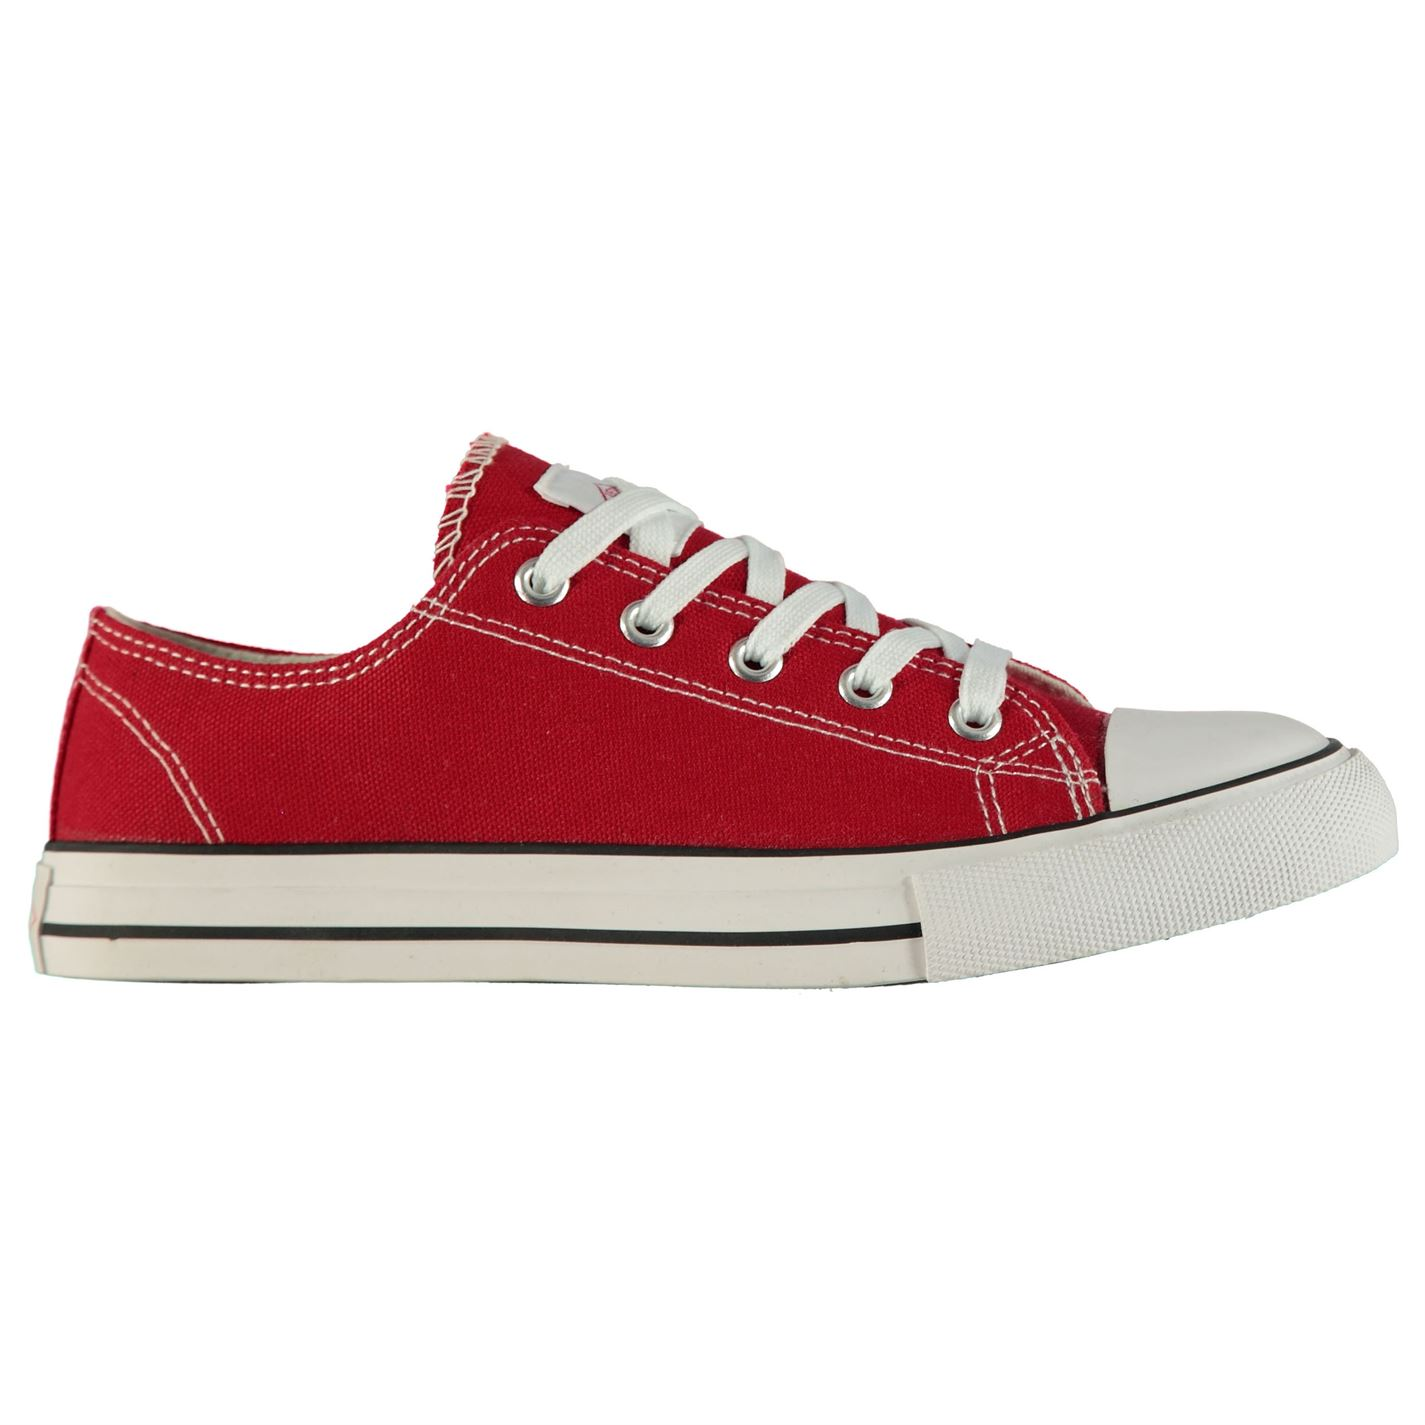 boty Lee Cooper Canvas Lo Shoes pánské Red - Glami.sk e0e376bb7f9